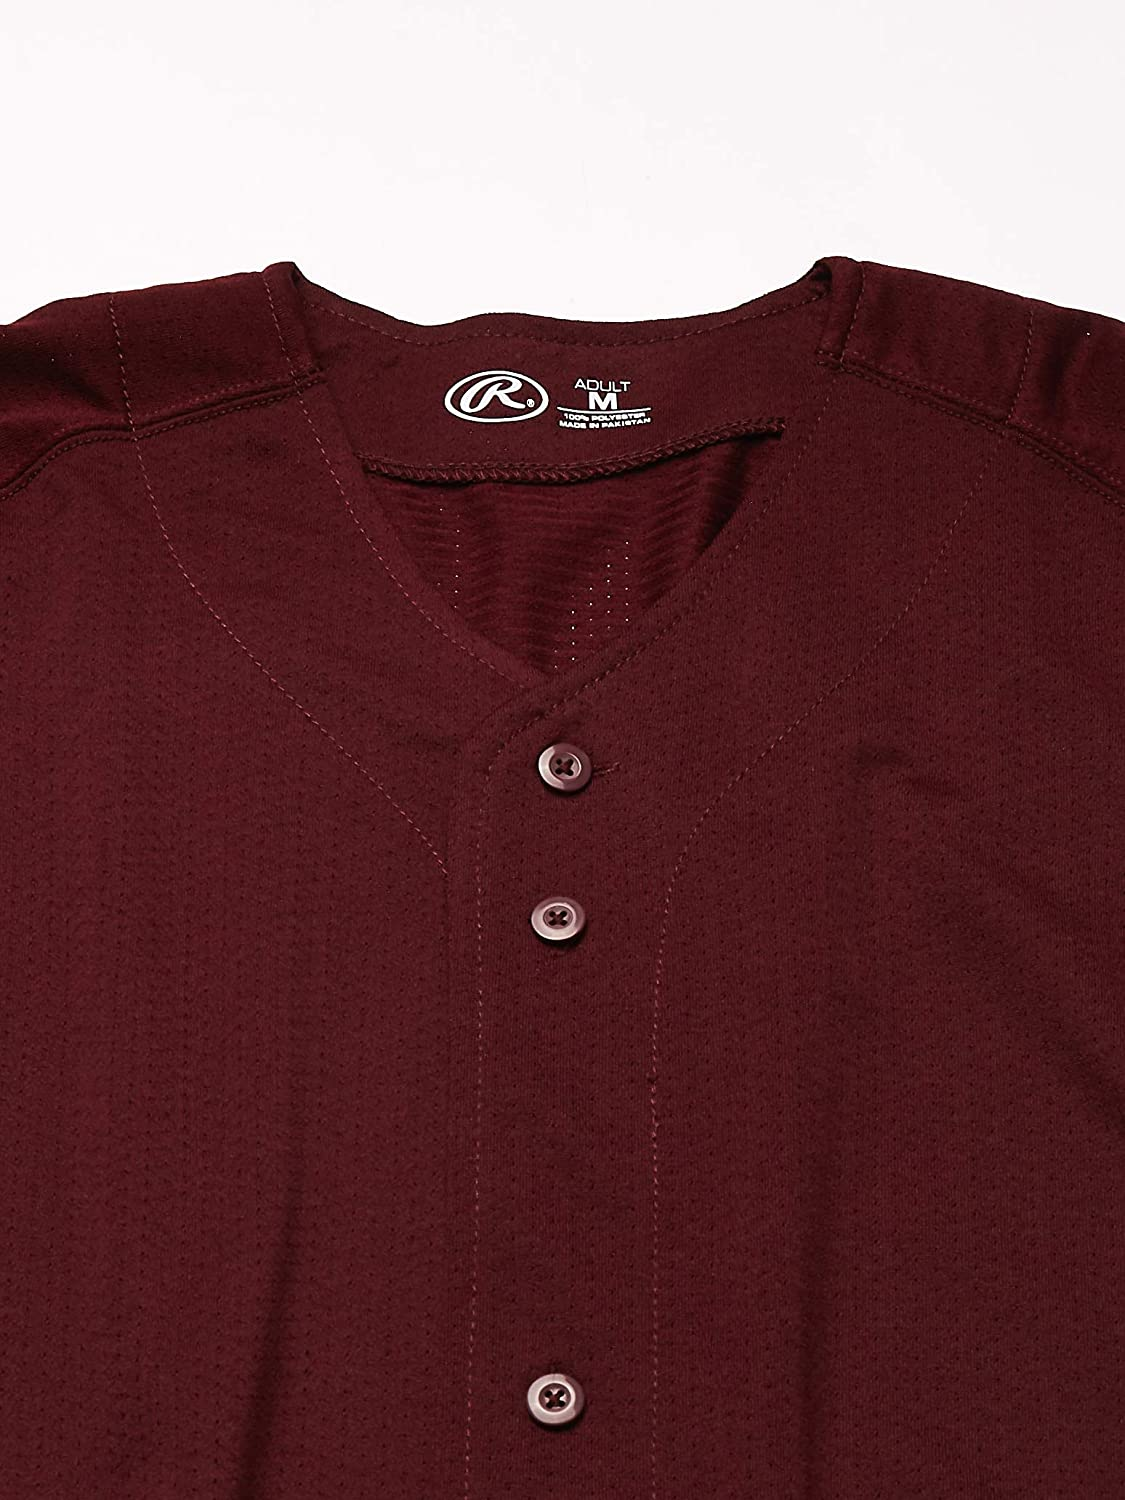 Rawlings Mens Full Button RBJ167 Jersey X-Large Maroon